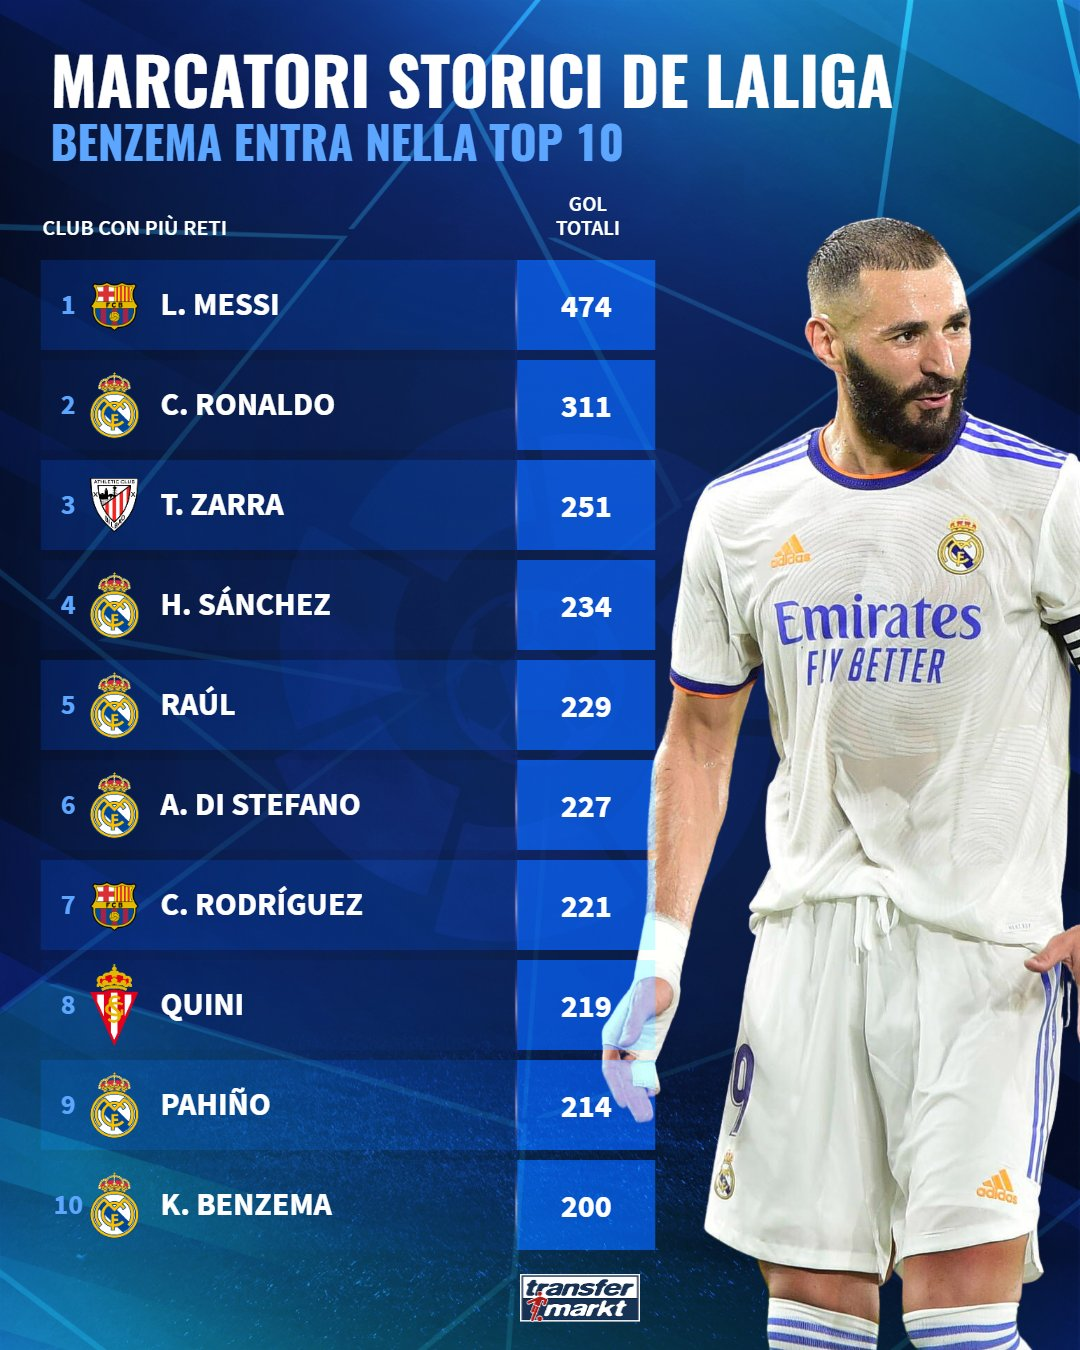 The top 10 scorers in the history of the Spanish League after Karim Benzema joined the list